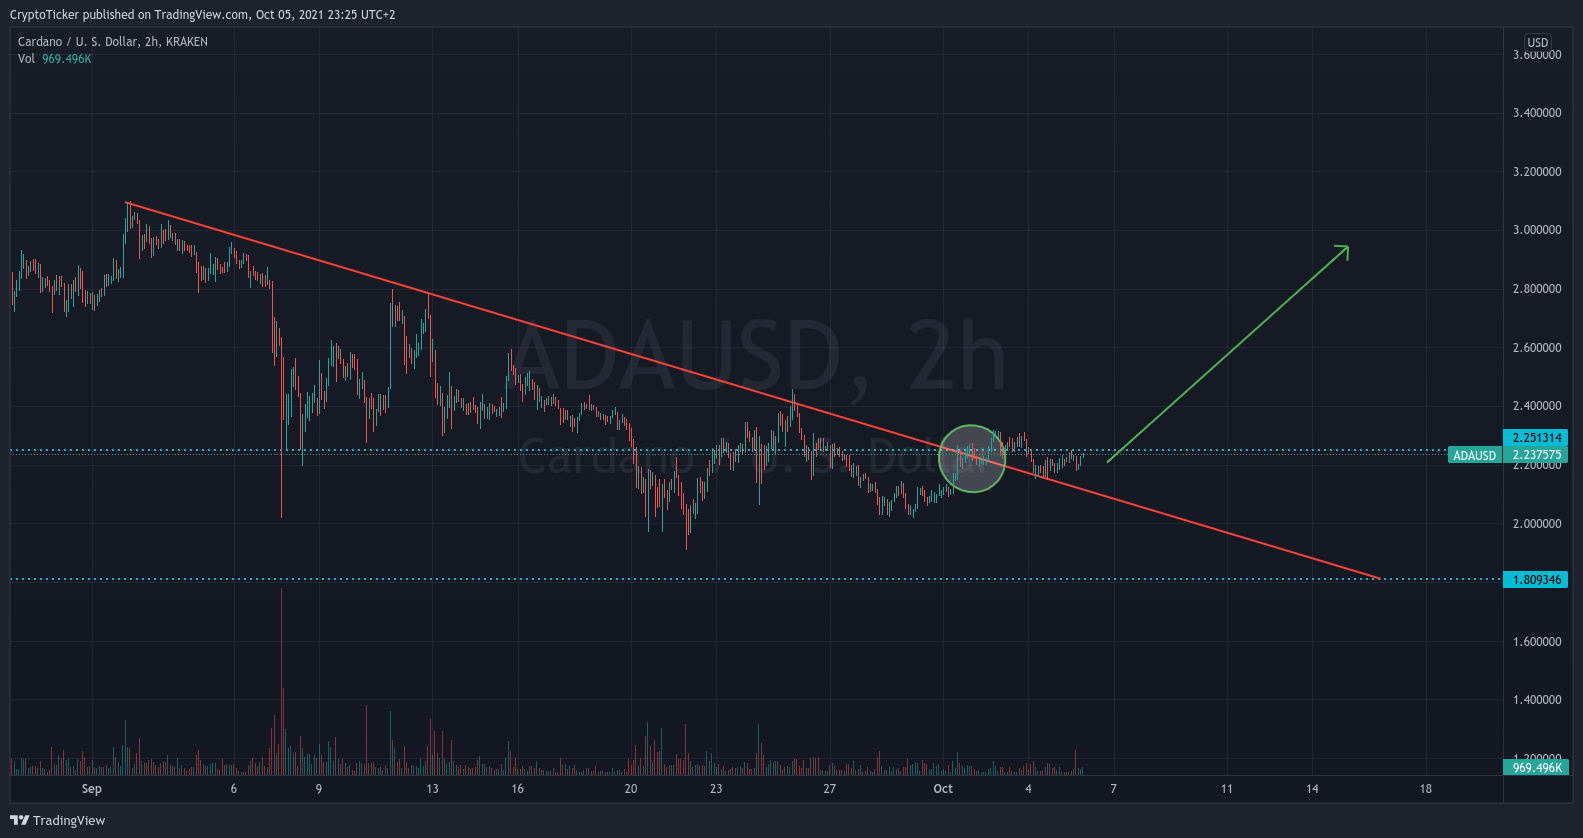 ADA/USD 2-hours chart showing a trend reversal